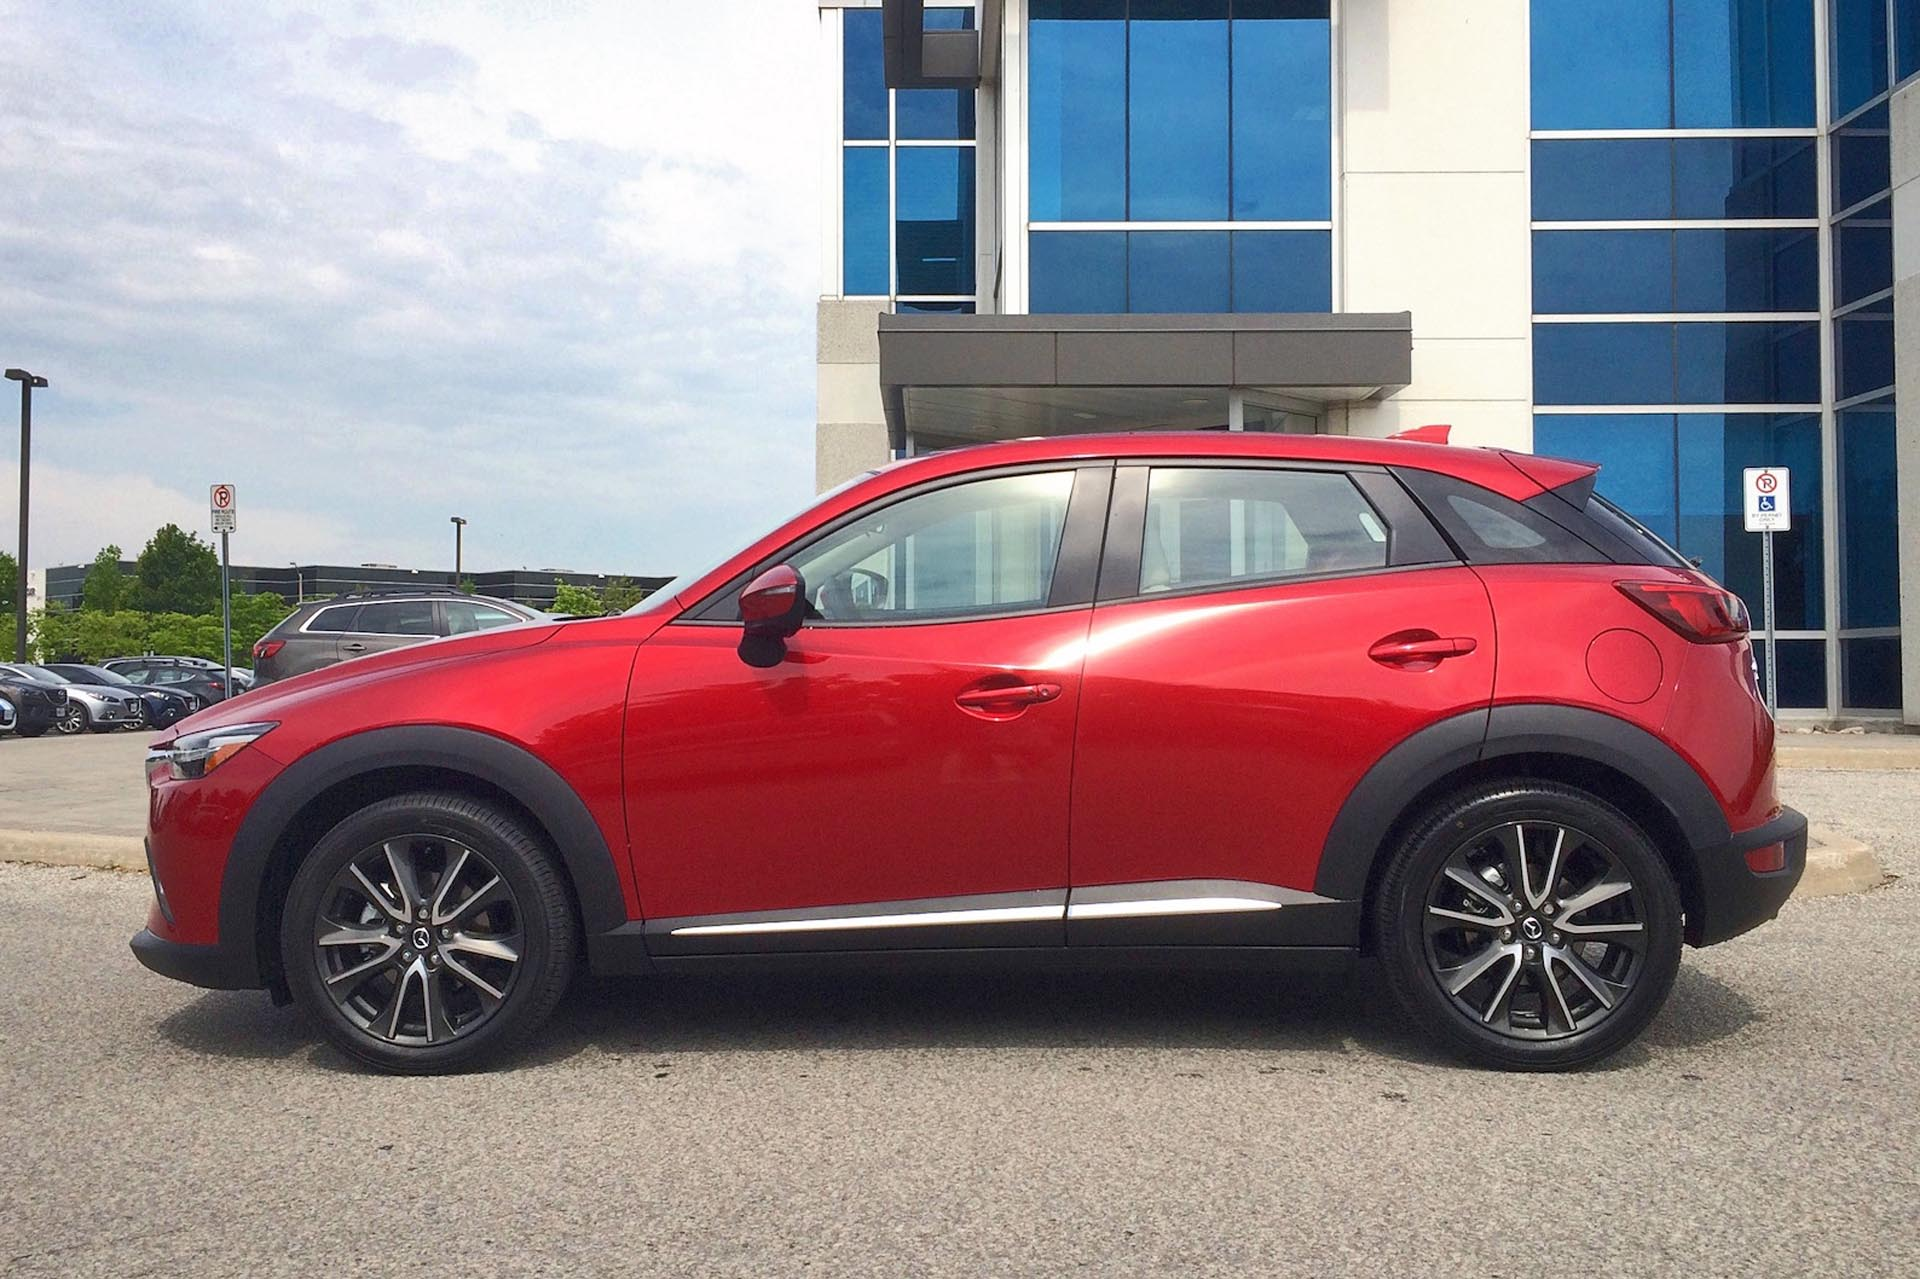 awd part it nerd gt the mazda img cx review